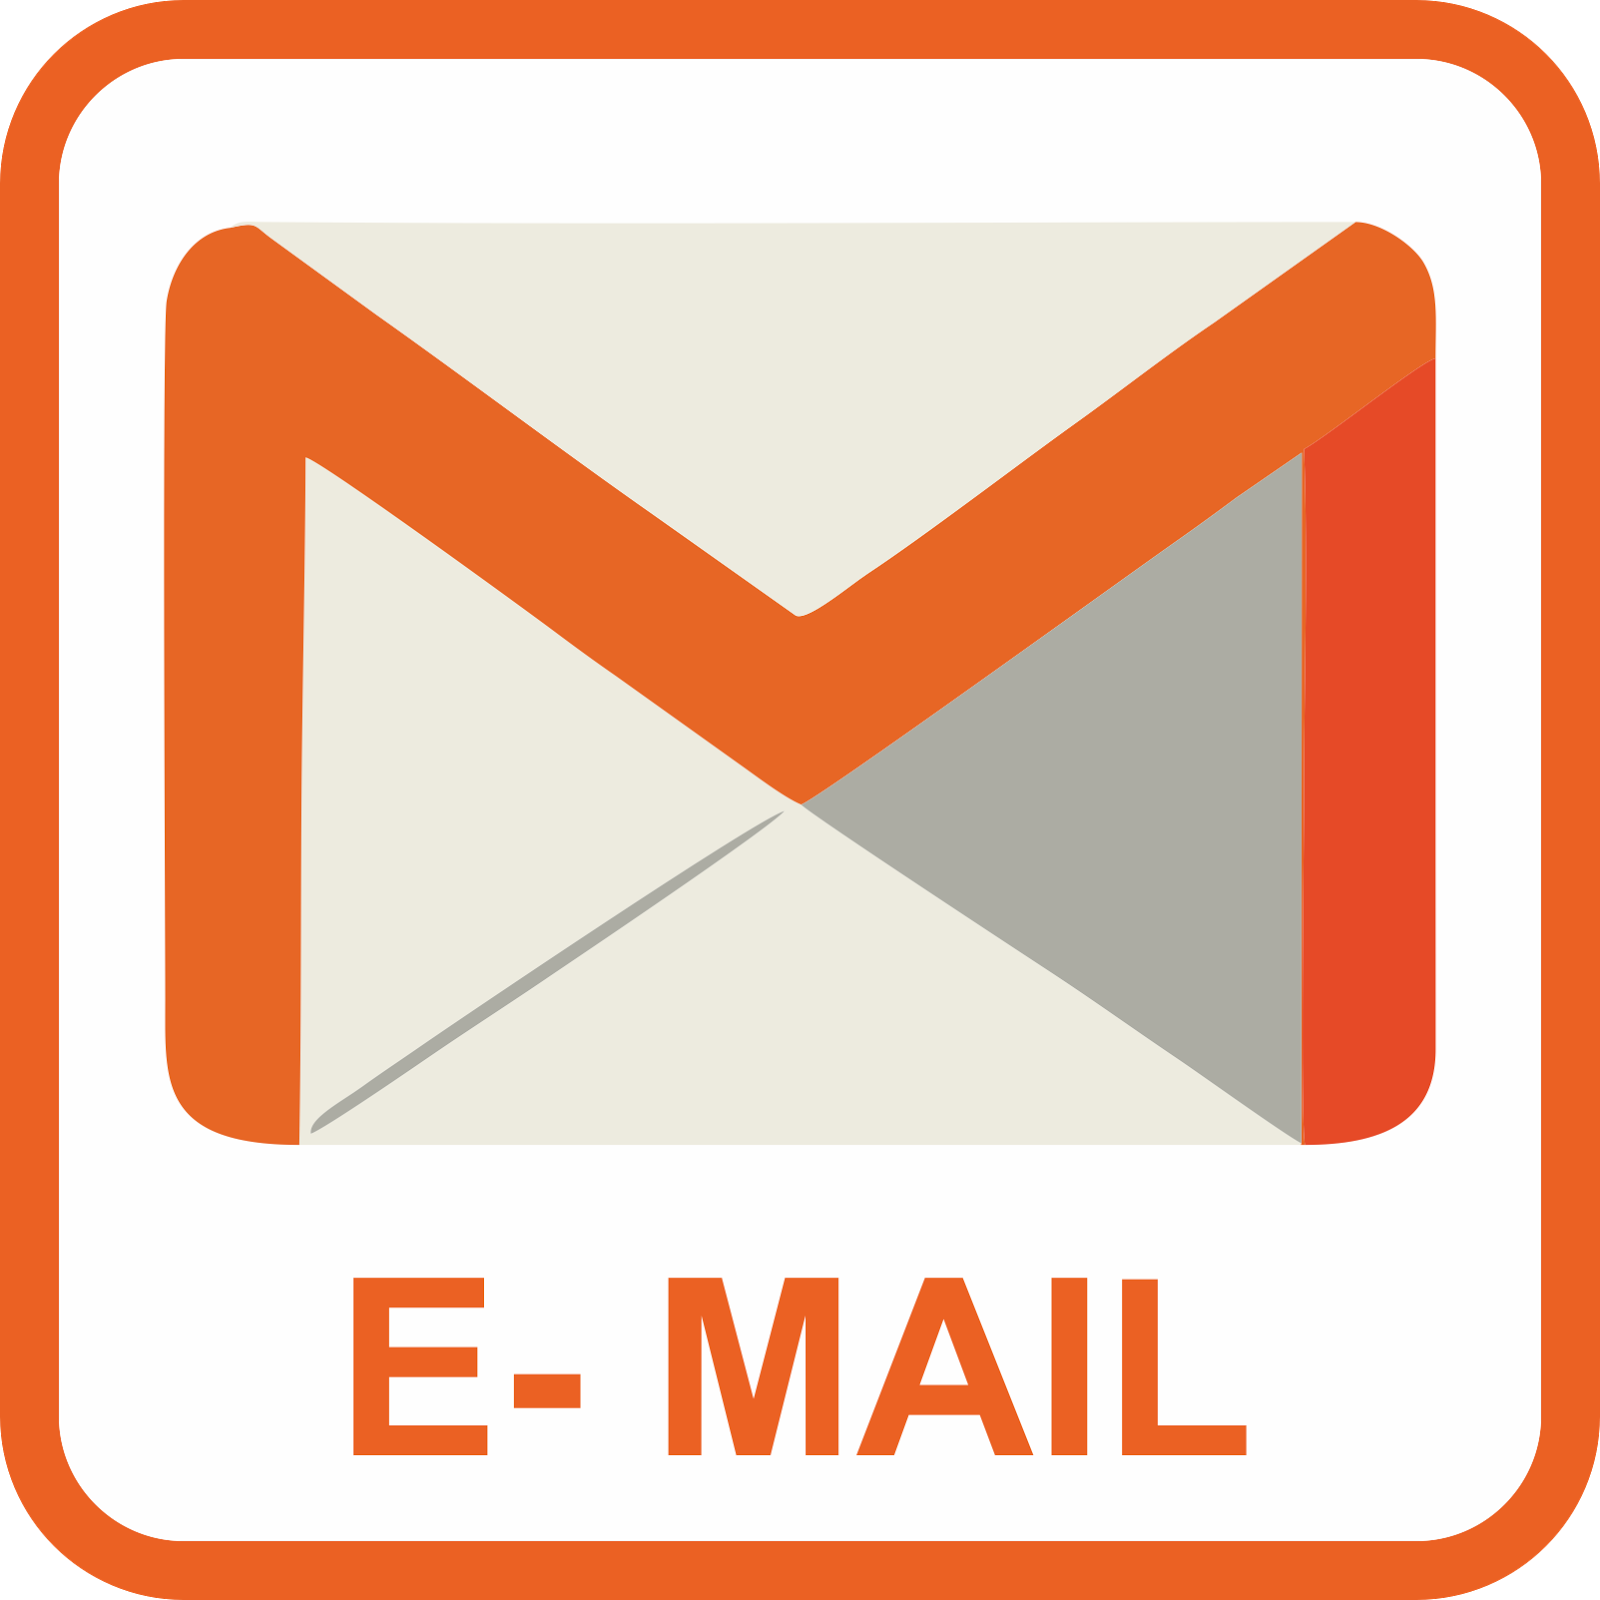 Mail PNG HD - 125544